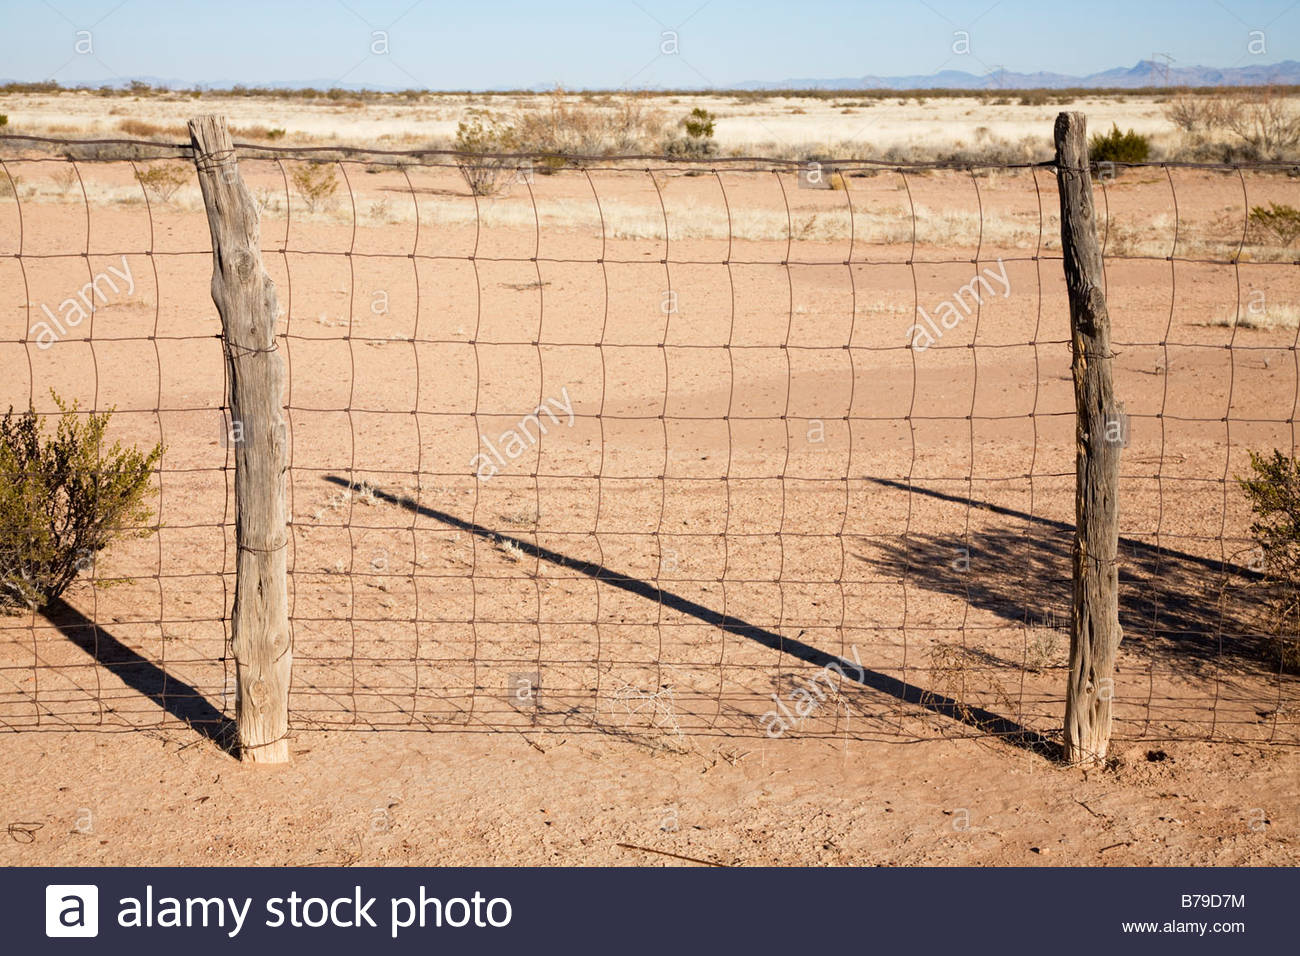 Rusty woven wire fence wooden posts Stock Photo: 21720936 - Alamy